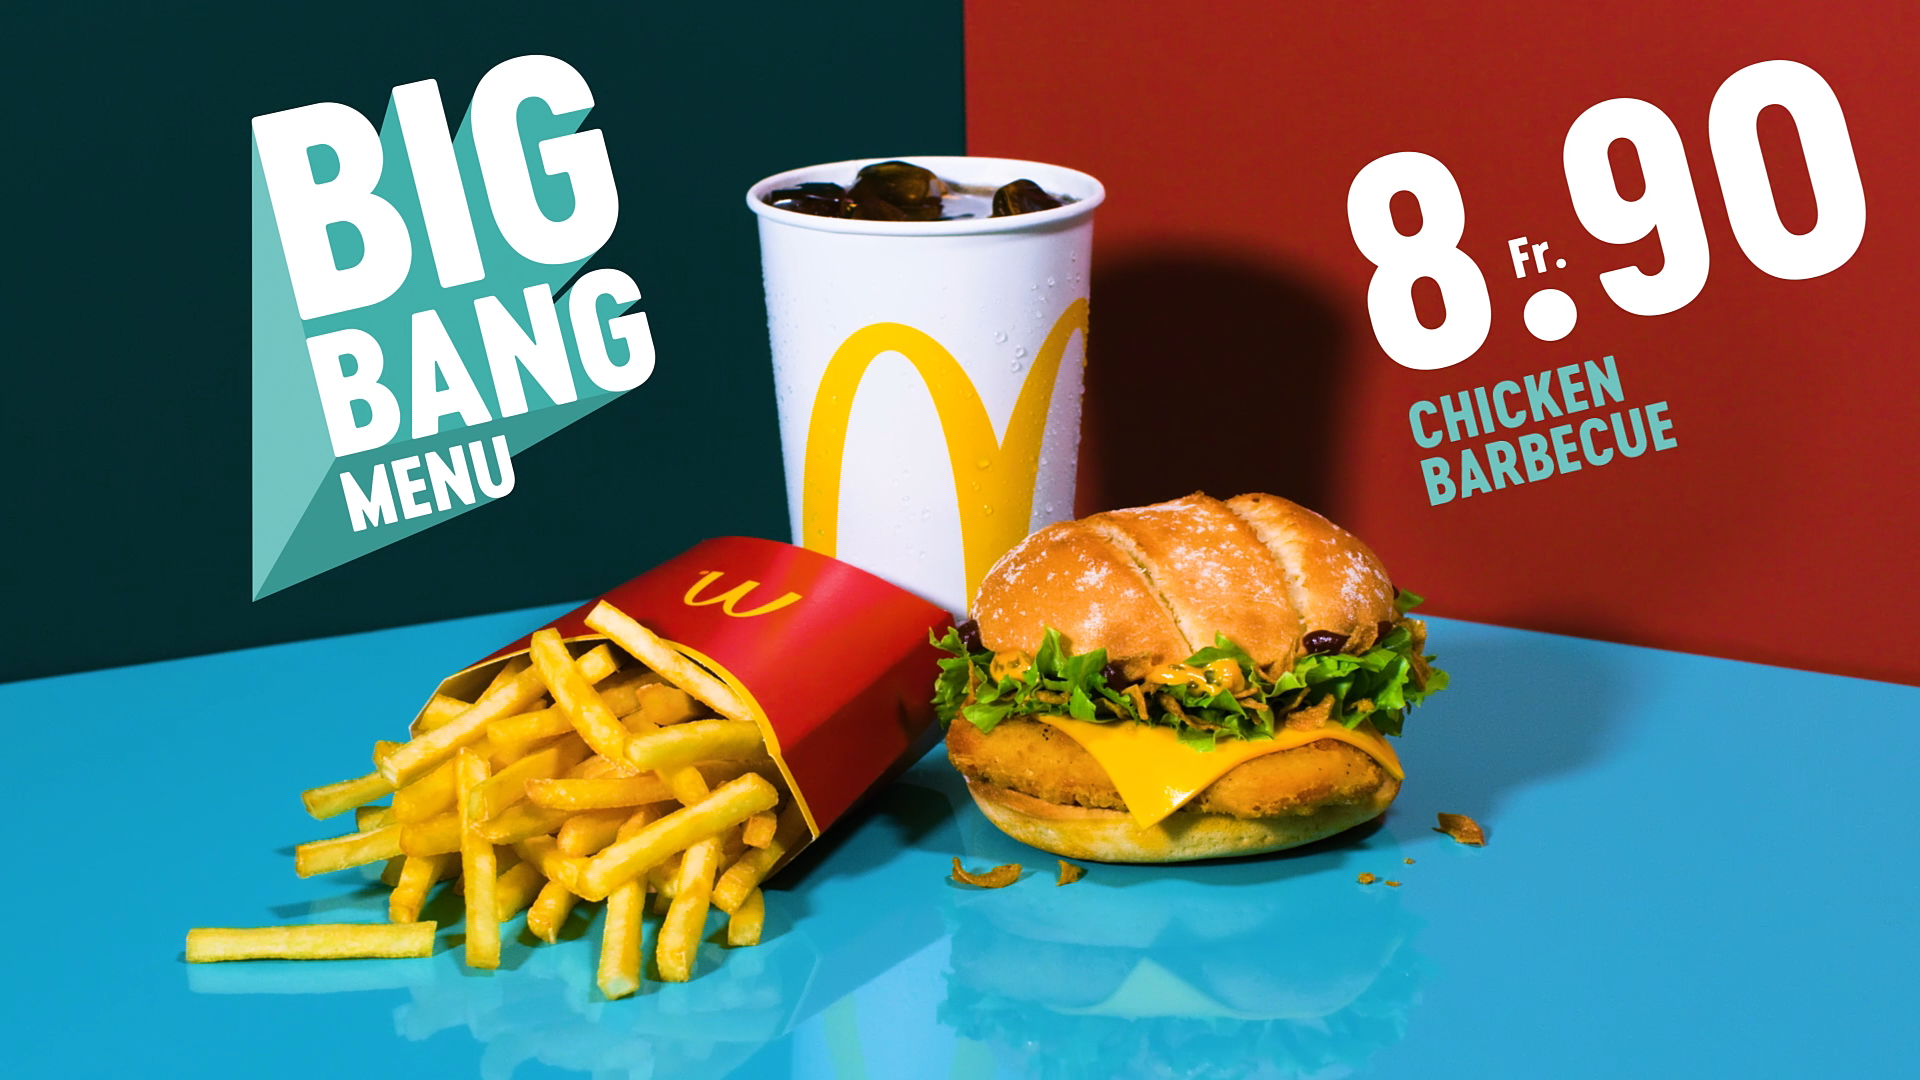 A McDonald's BigBang Menu with a Chicken Barbecue Burger, a Coca Cola and some fries